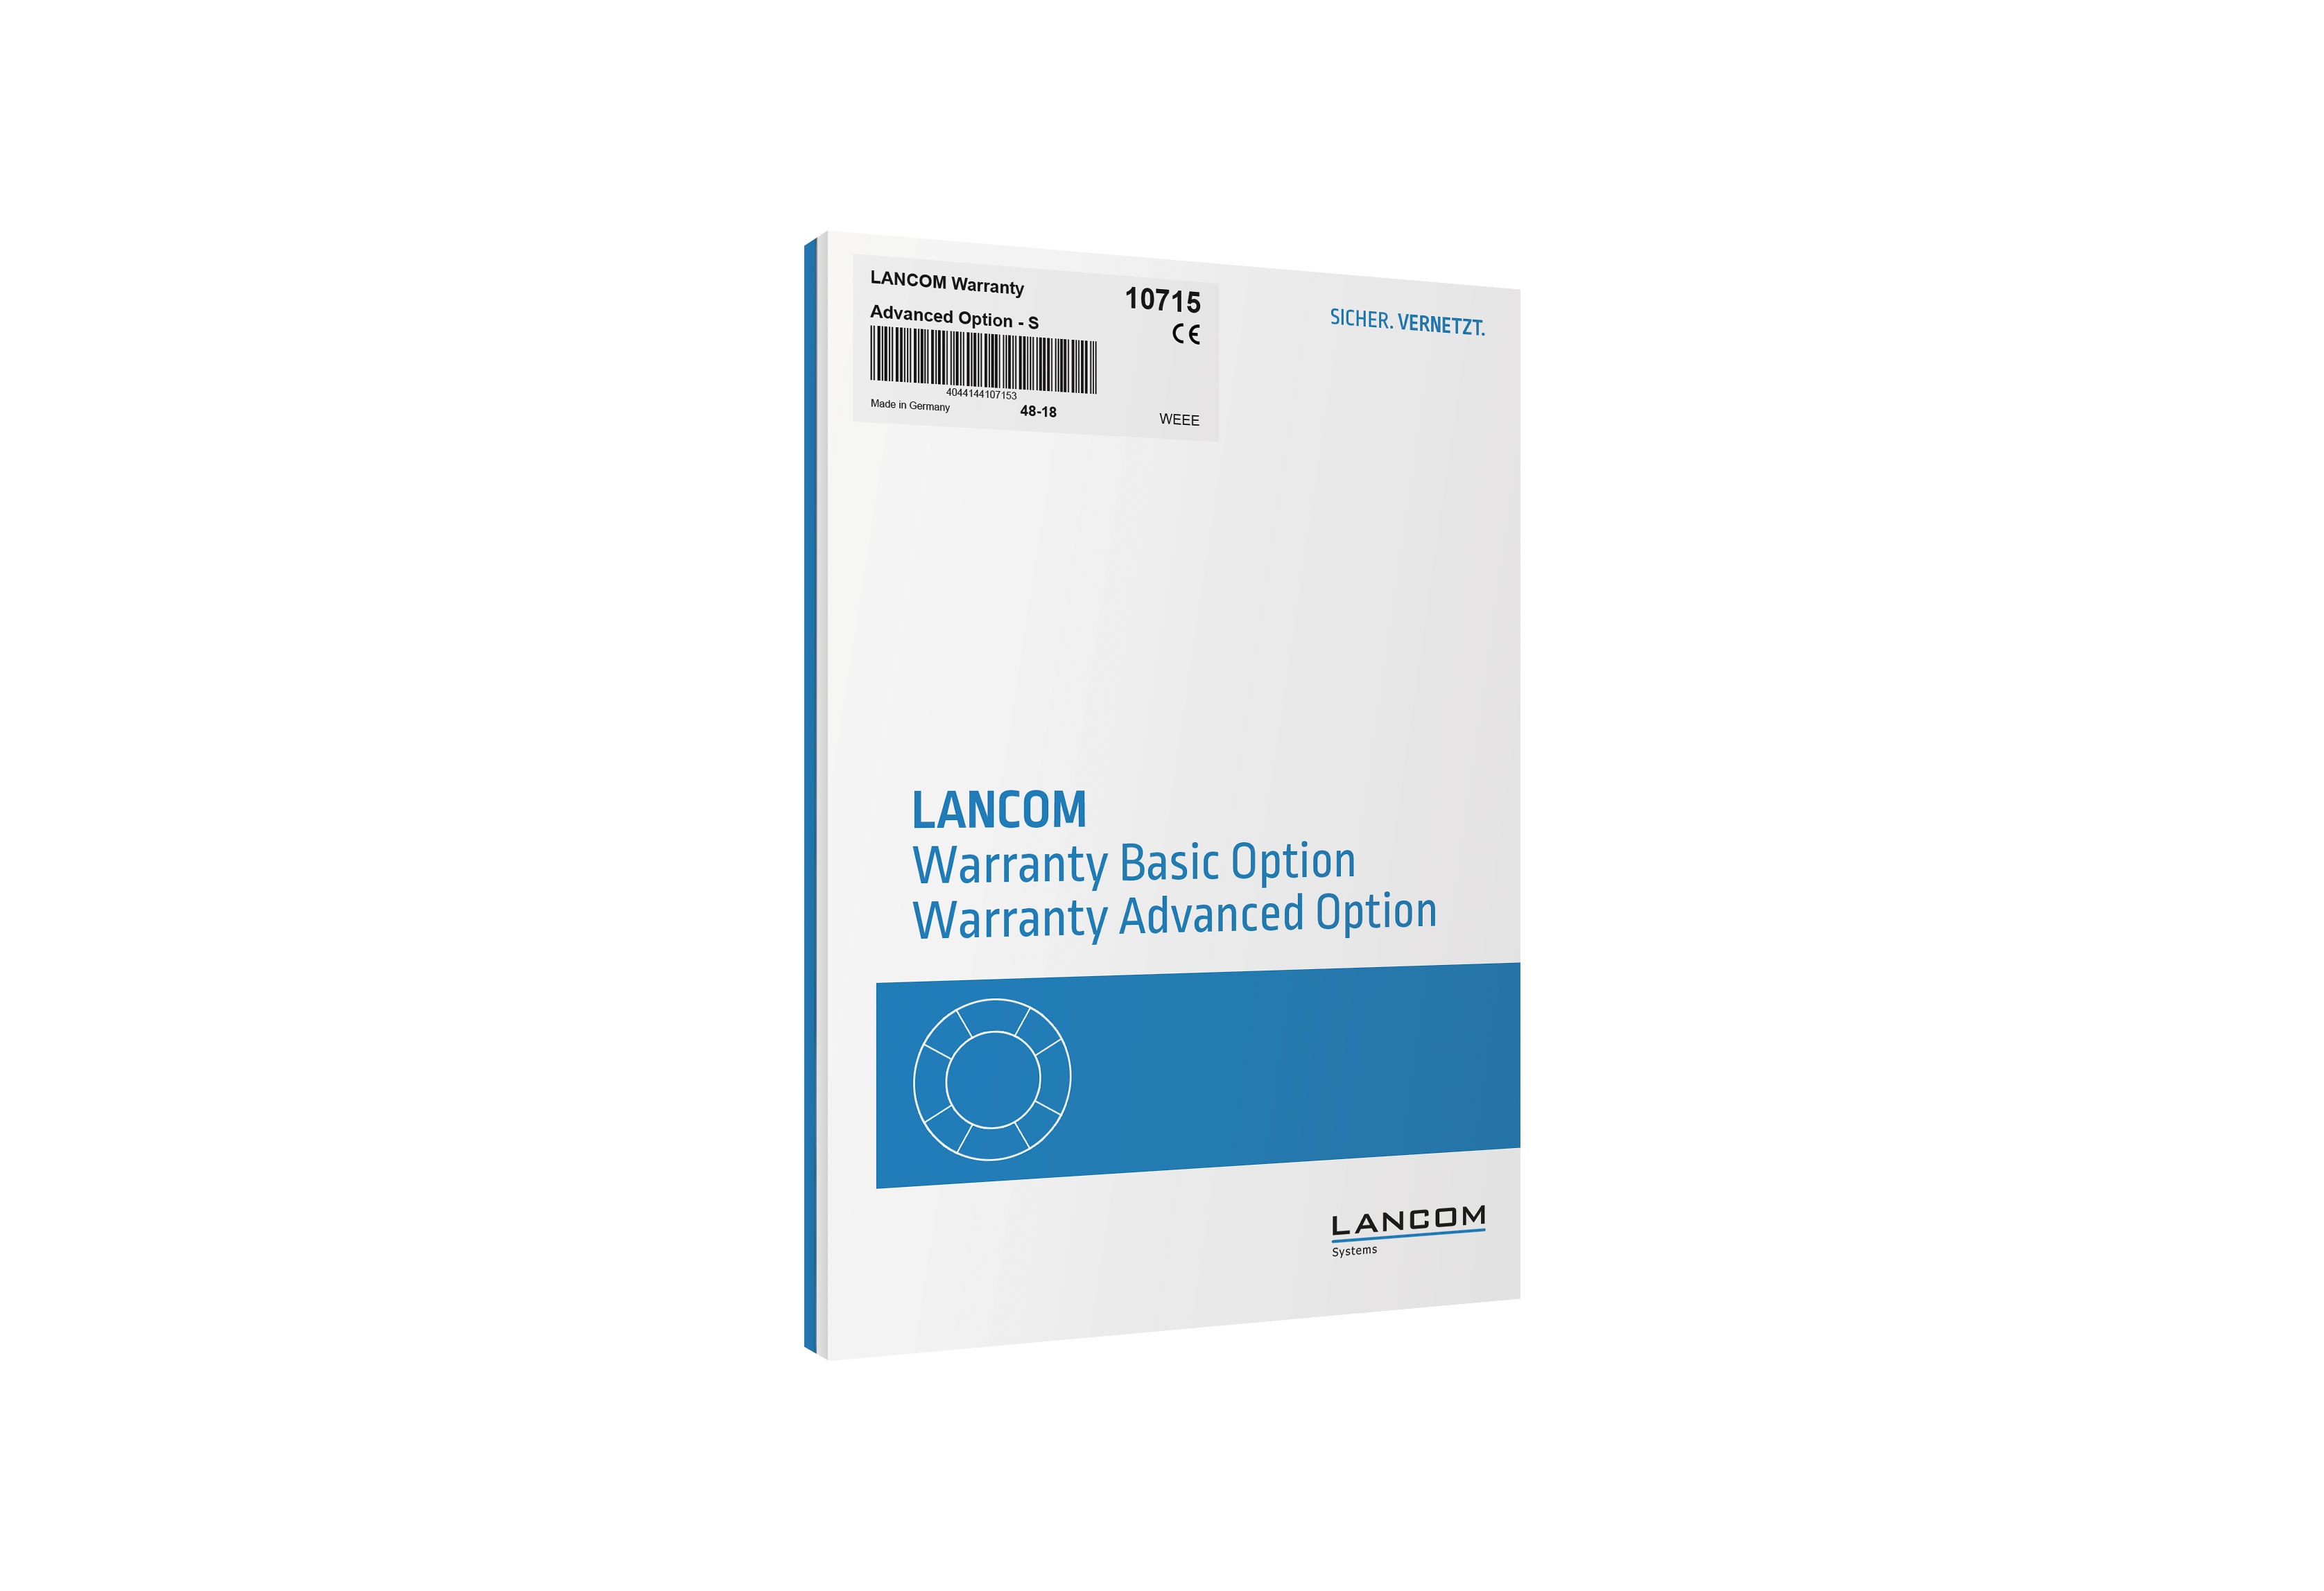 Produktbild - LANCOM Warranty Advanced Option - S